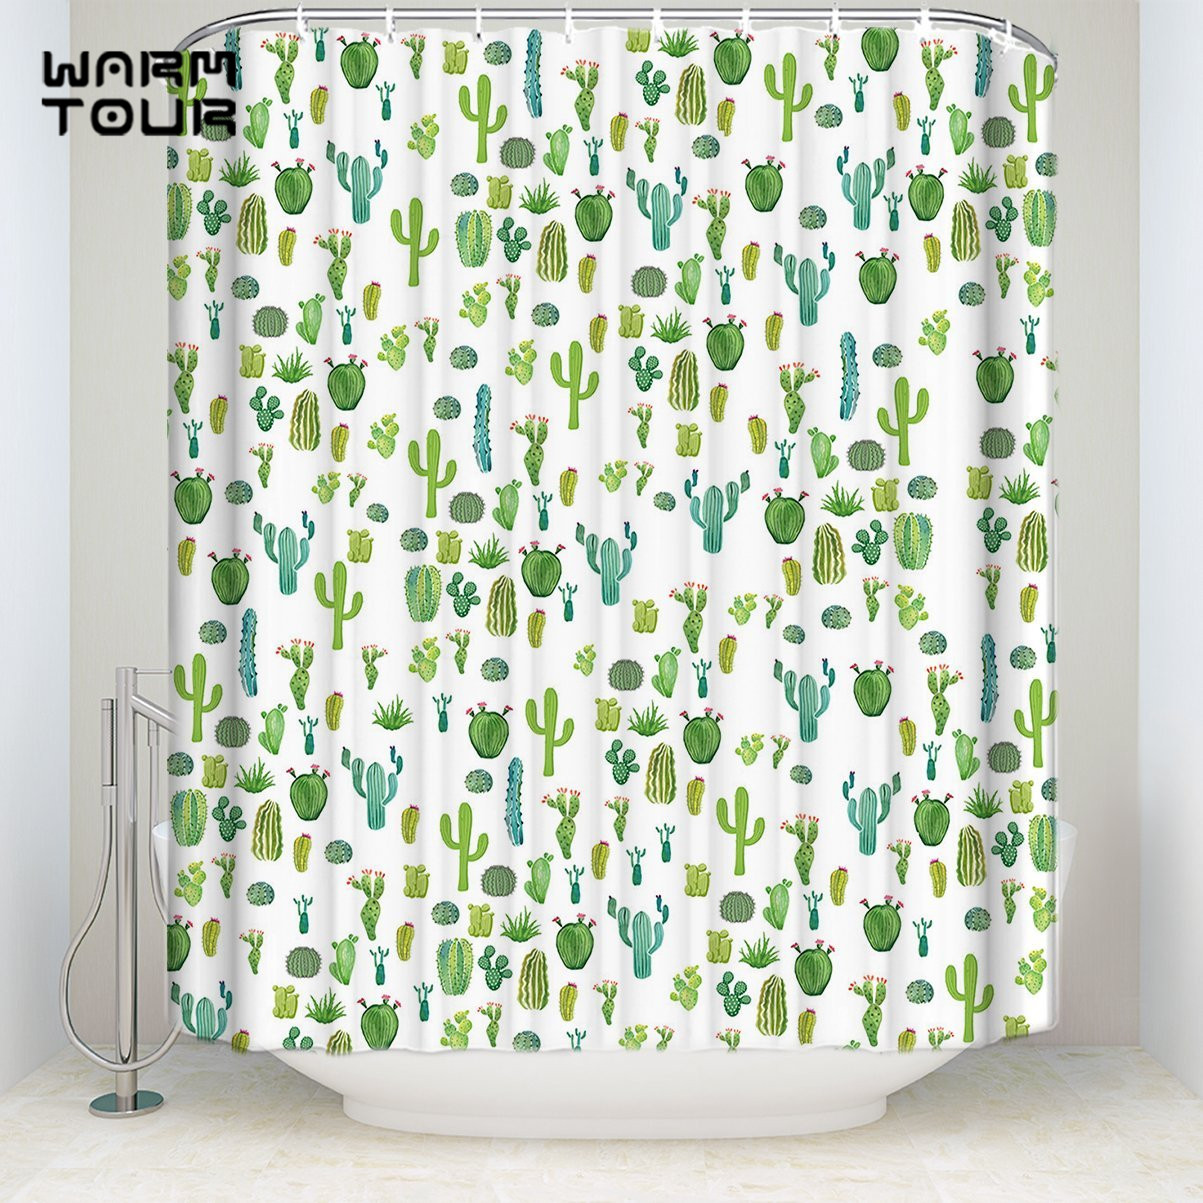 Us 16 23 30 Off Extra Long Fabric Bath Shower Curtains 36 X 78 Inches Funny Tropical Cactus Mildew Resistant Bathroom Decor Sets With Hooks In